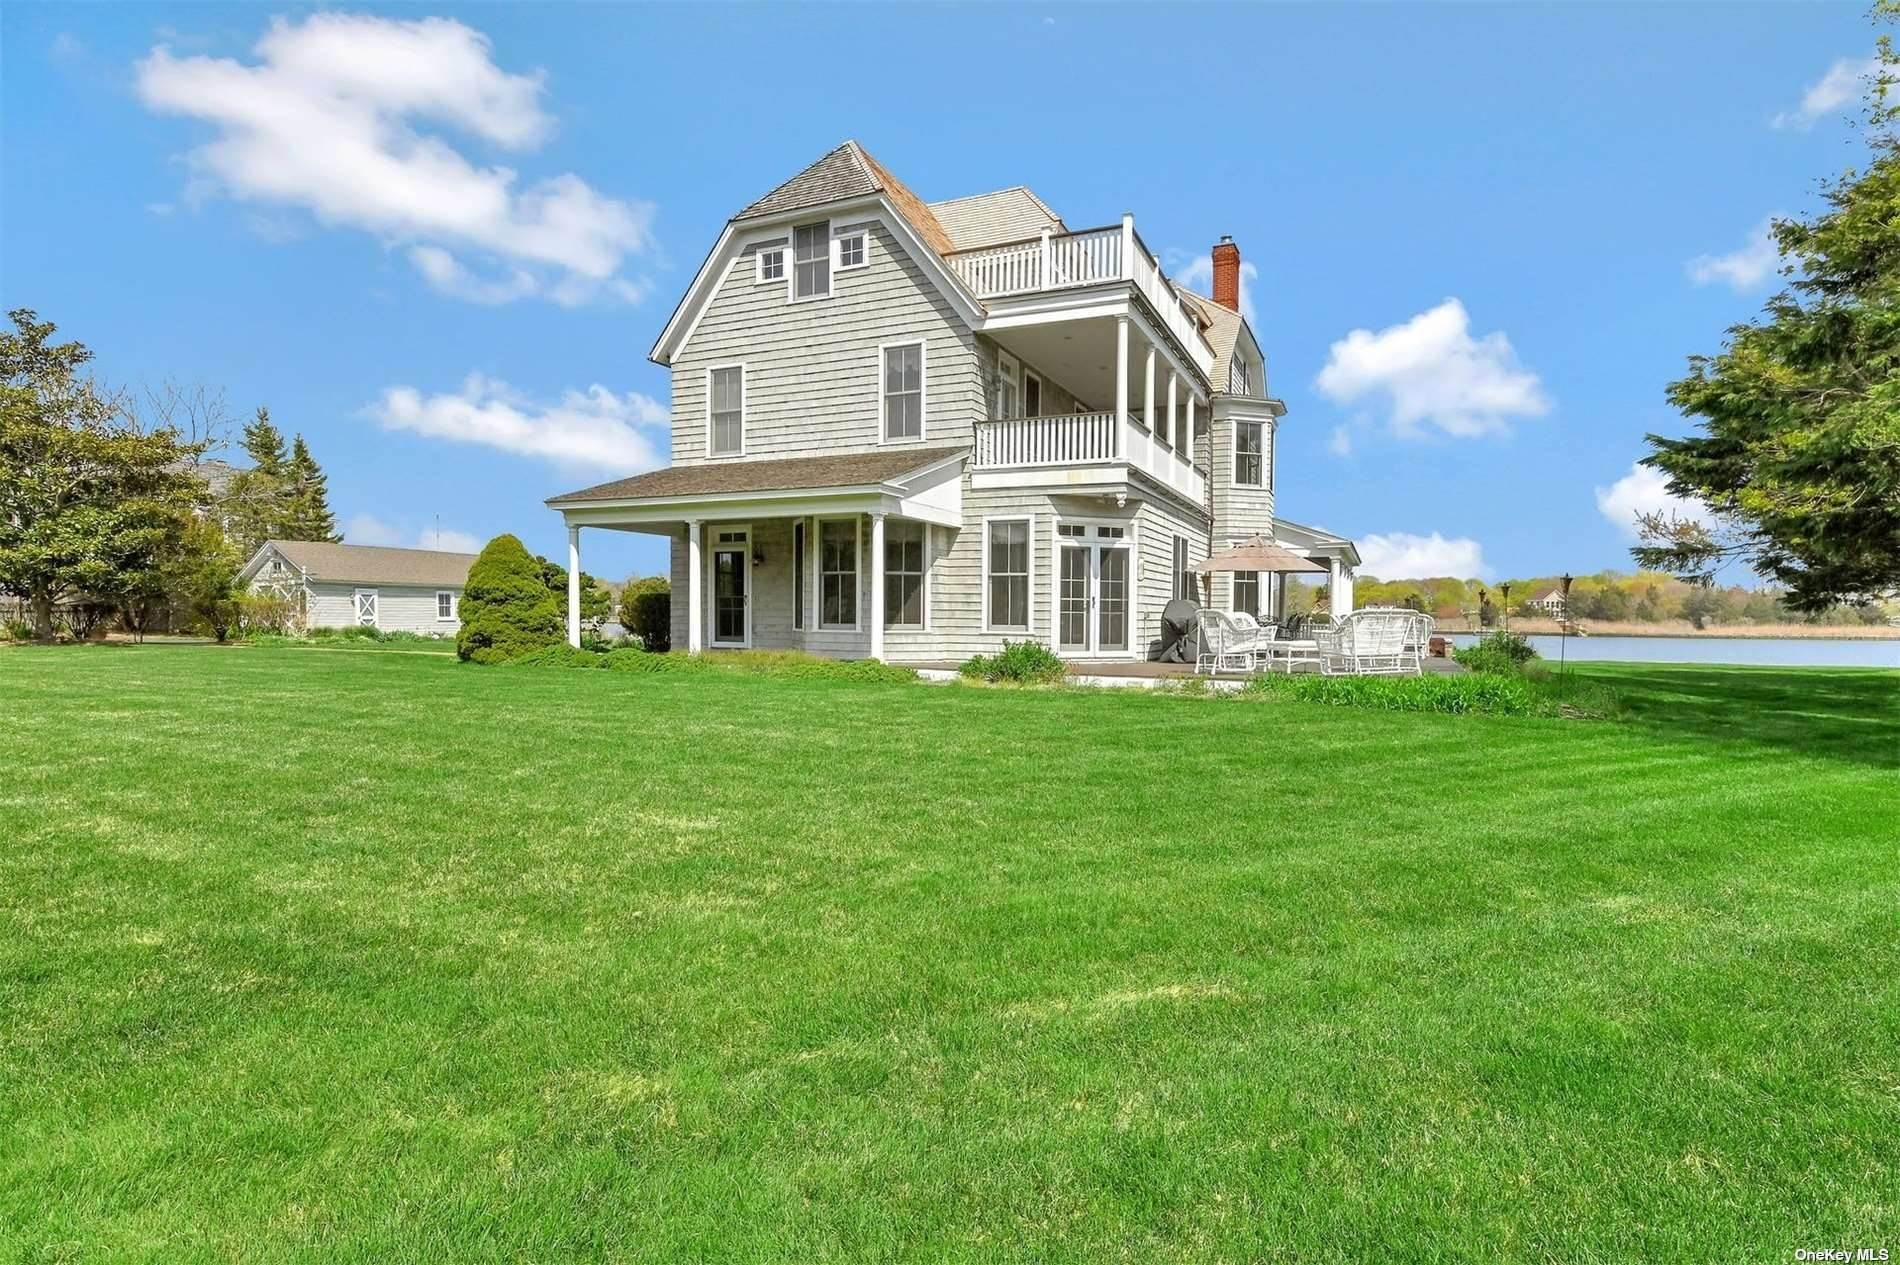 Residential for Sale at 127 Senix Avenue, Center Moriches, NY 11934 Center Moriches, New York 11934 United States